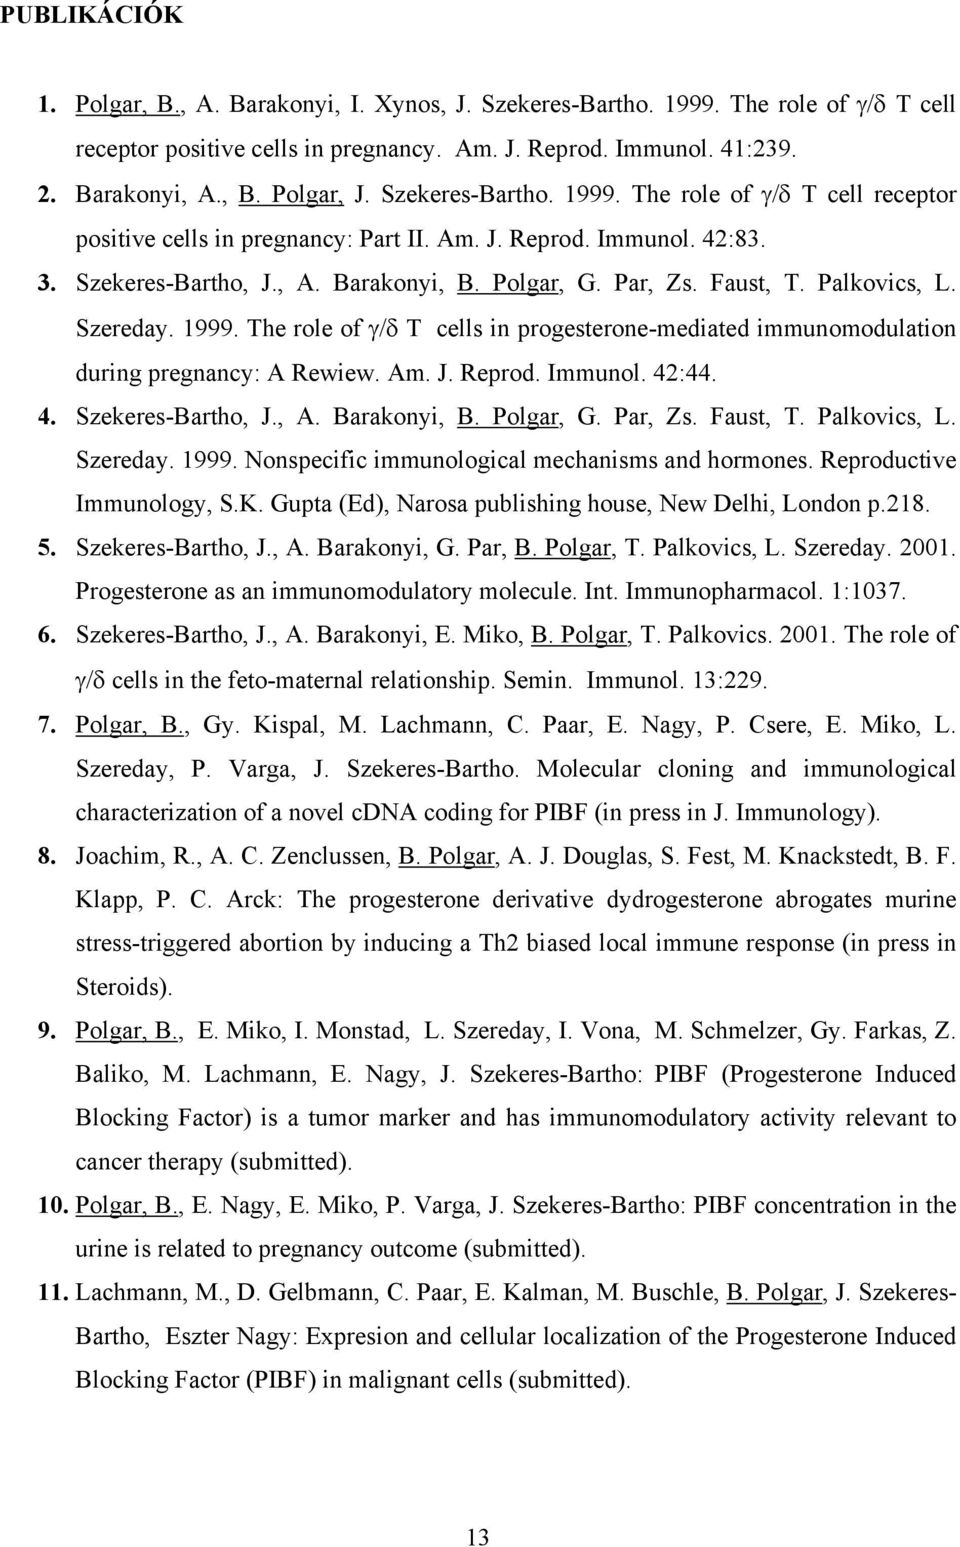 Palkovics, L. Szereday. 1999. The role of γ/δ T cells in progesterone-mediated immunomodulation during pregnancy: A Rewiew. Am. J. Reprod. Immunol. 42:44. 4. Szekeres-Bartho, J., A. Barakonyi, B.